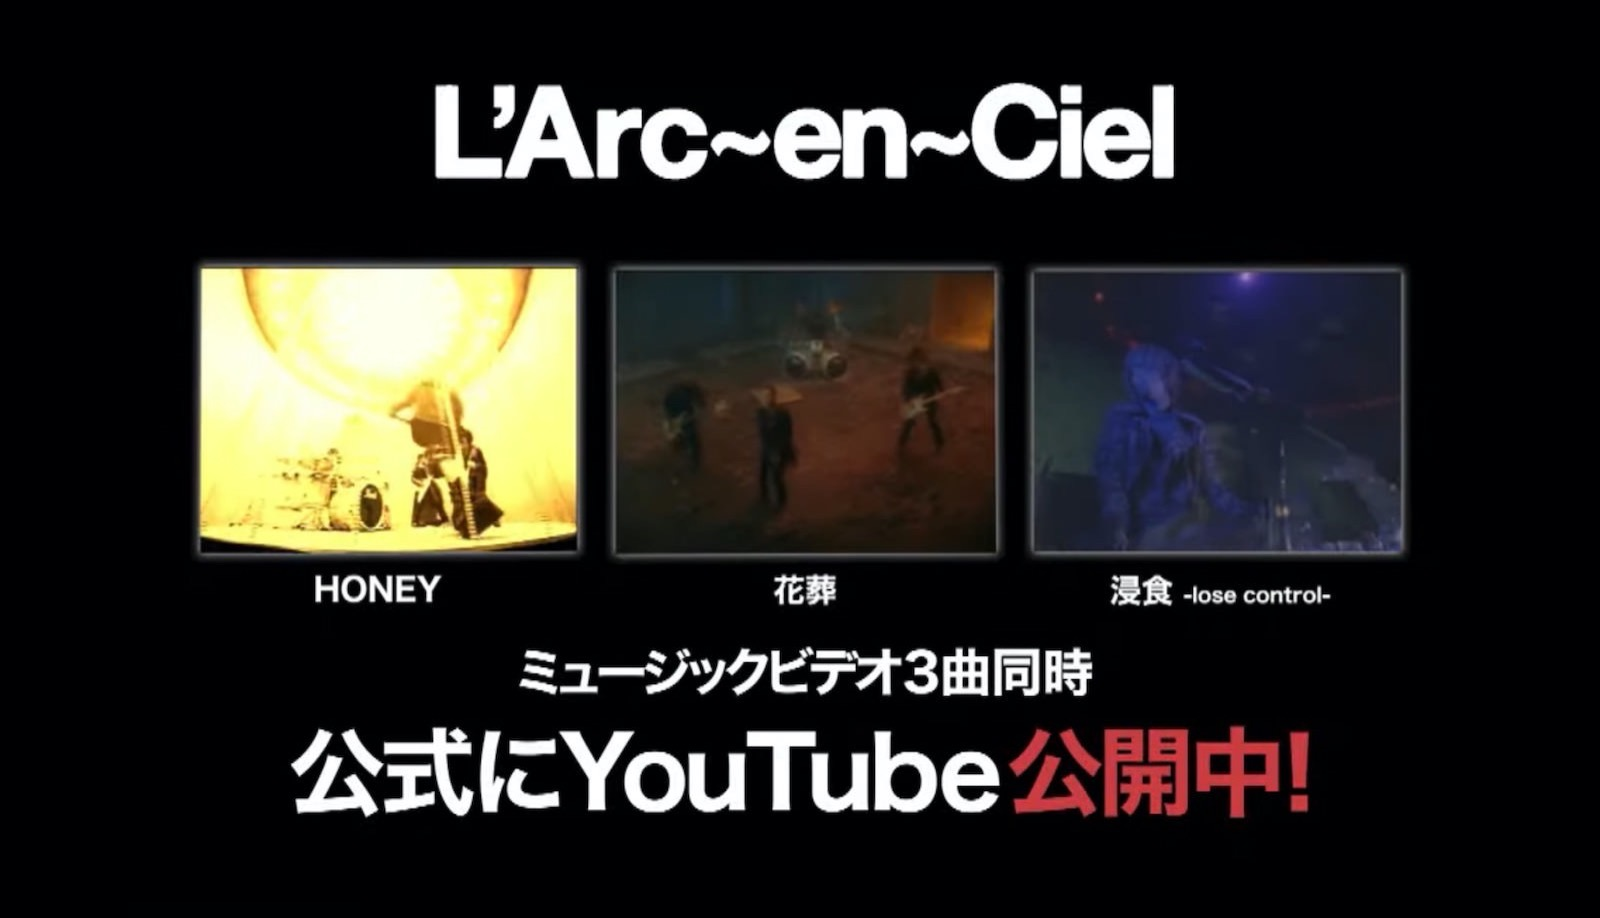 Larc-en-ciel-youtube.jpg